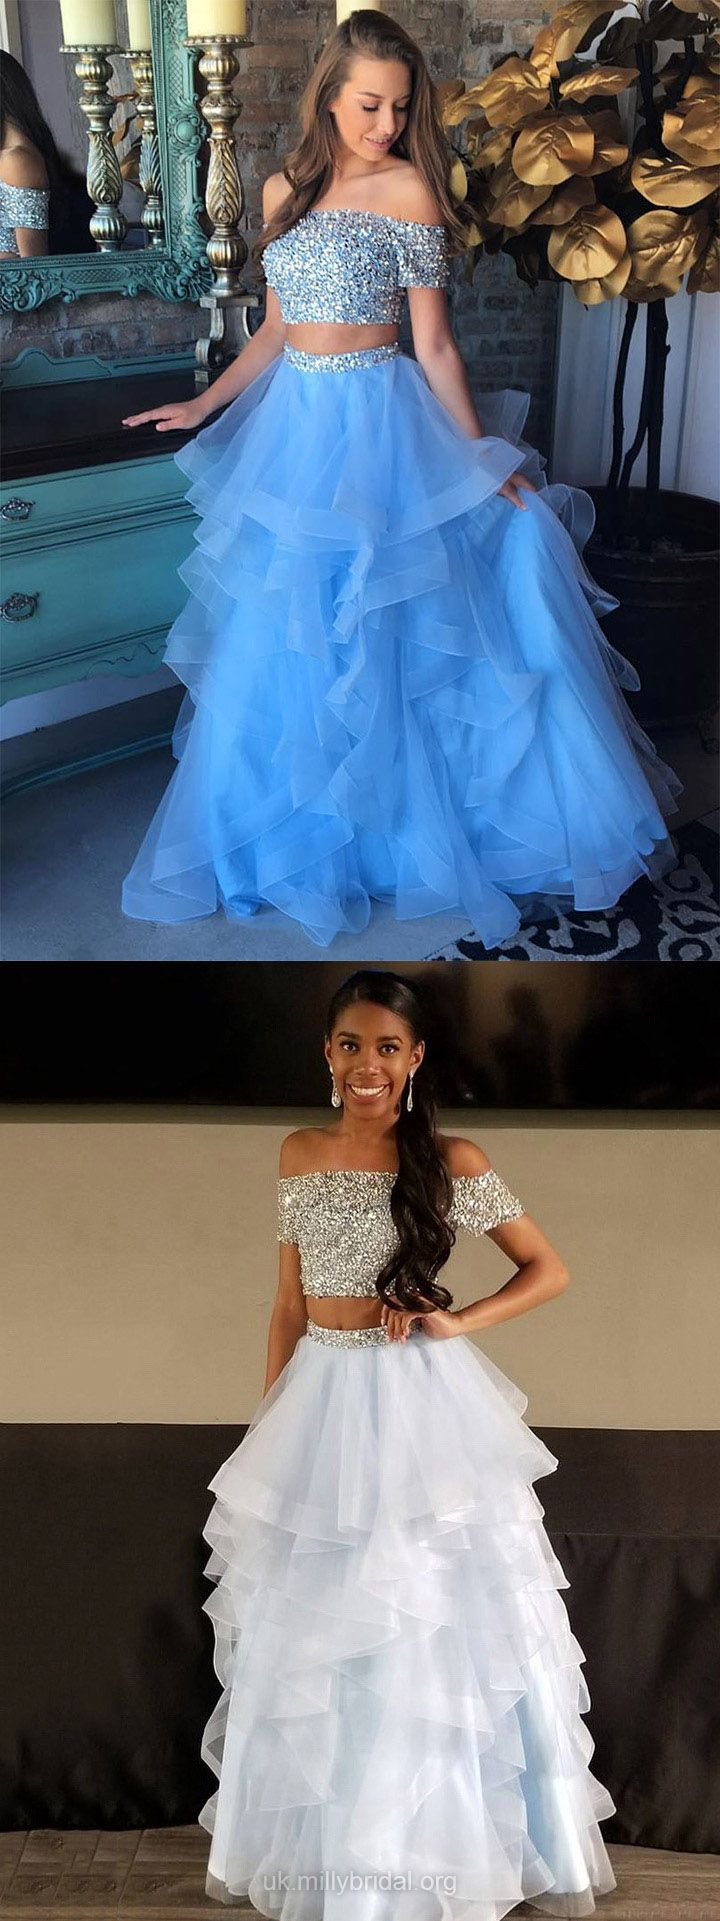 Two piece formal dresses long blue prom dresses sparkly aline